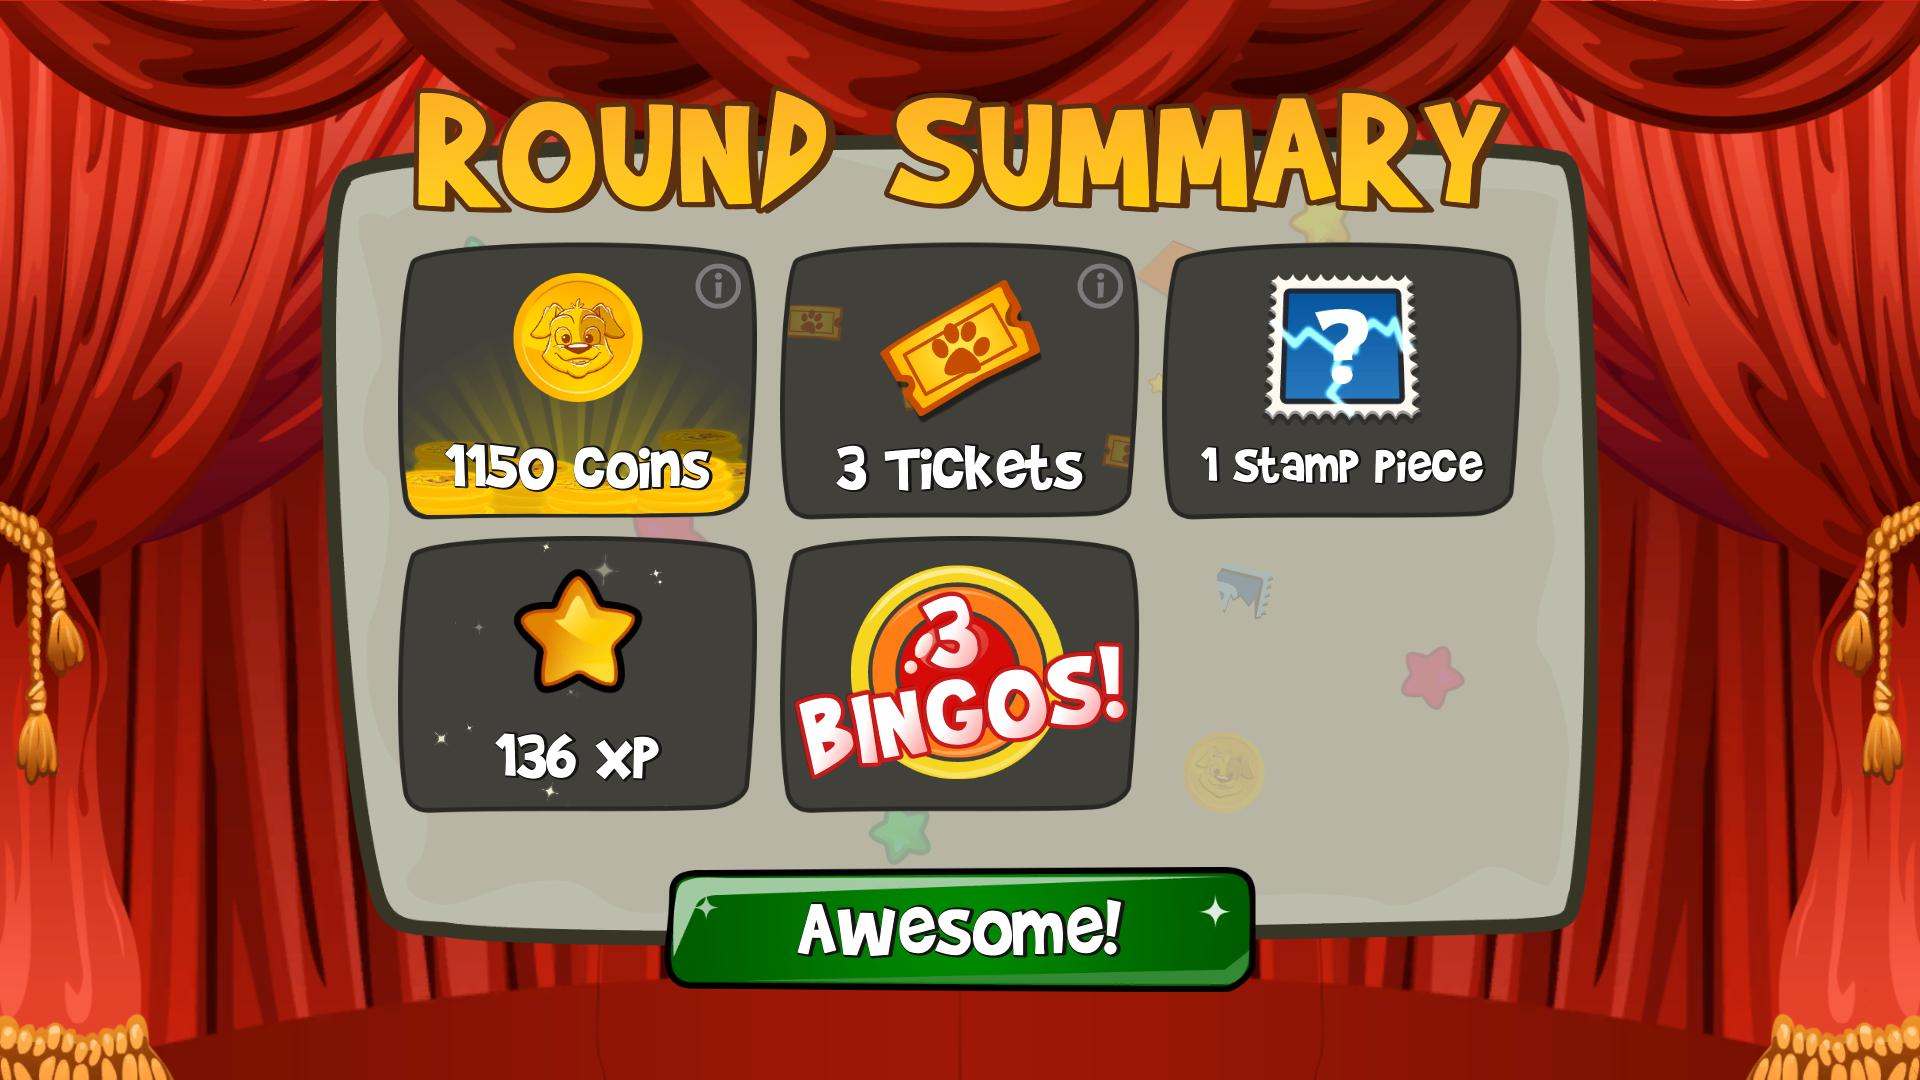 Bingo Abradoodle - Bingo Games Free to Play! 3.0.02 Screenshot 12